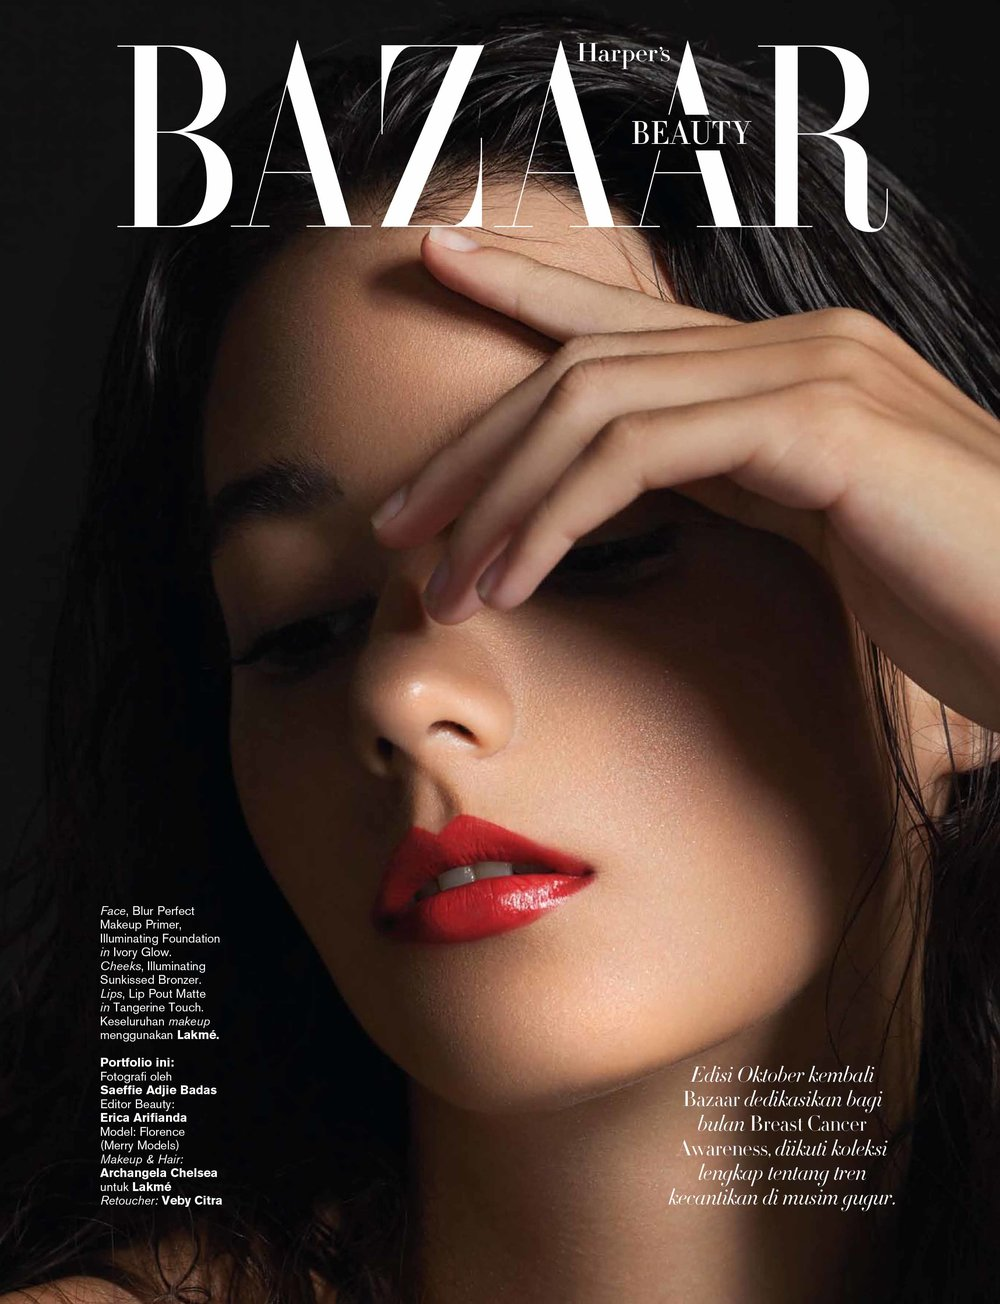 Bazaar Beauty 2017